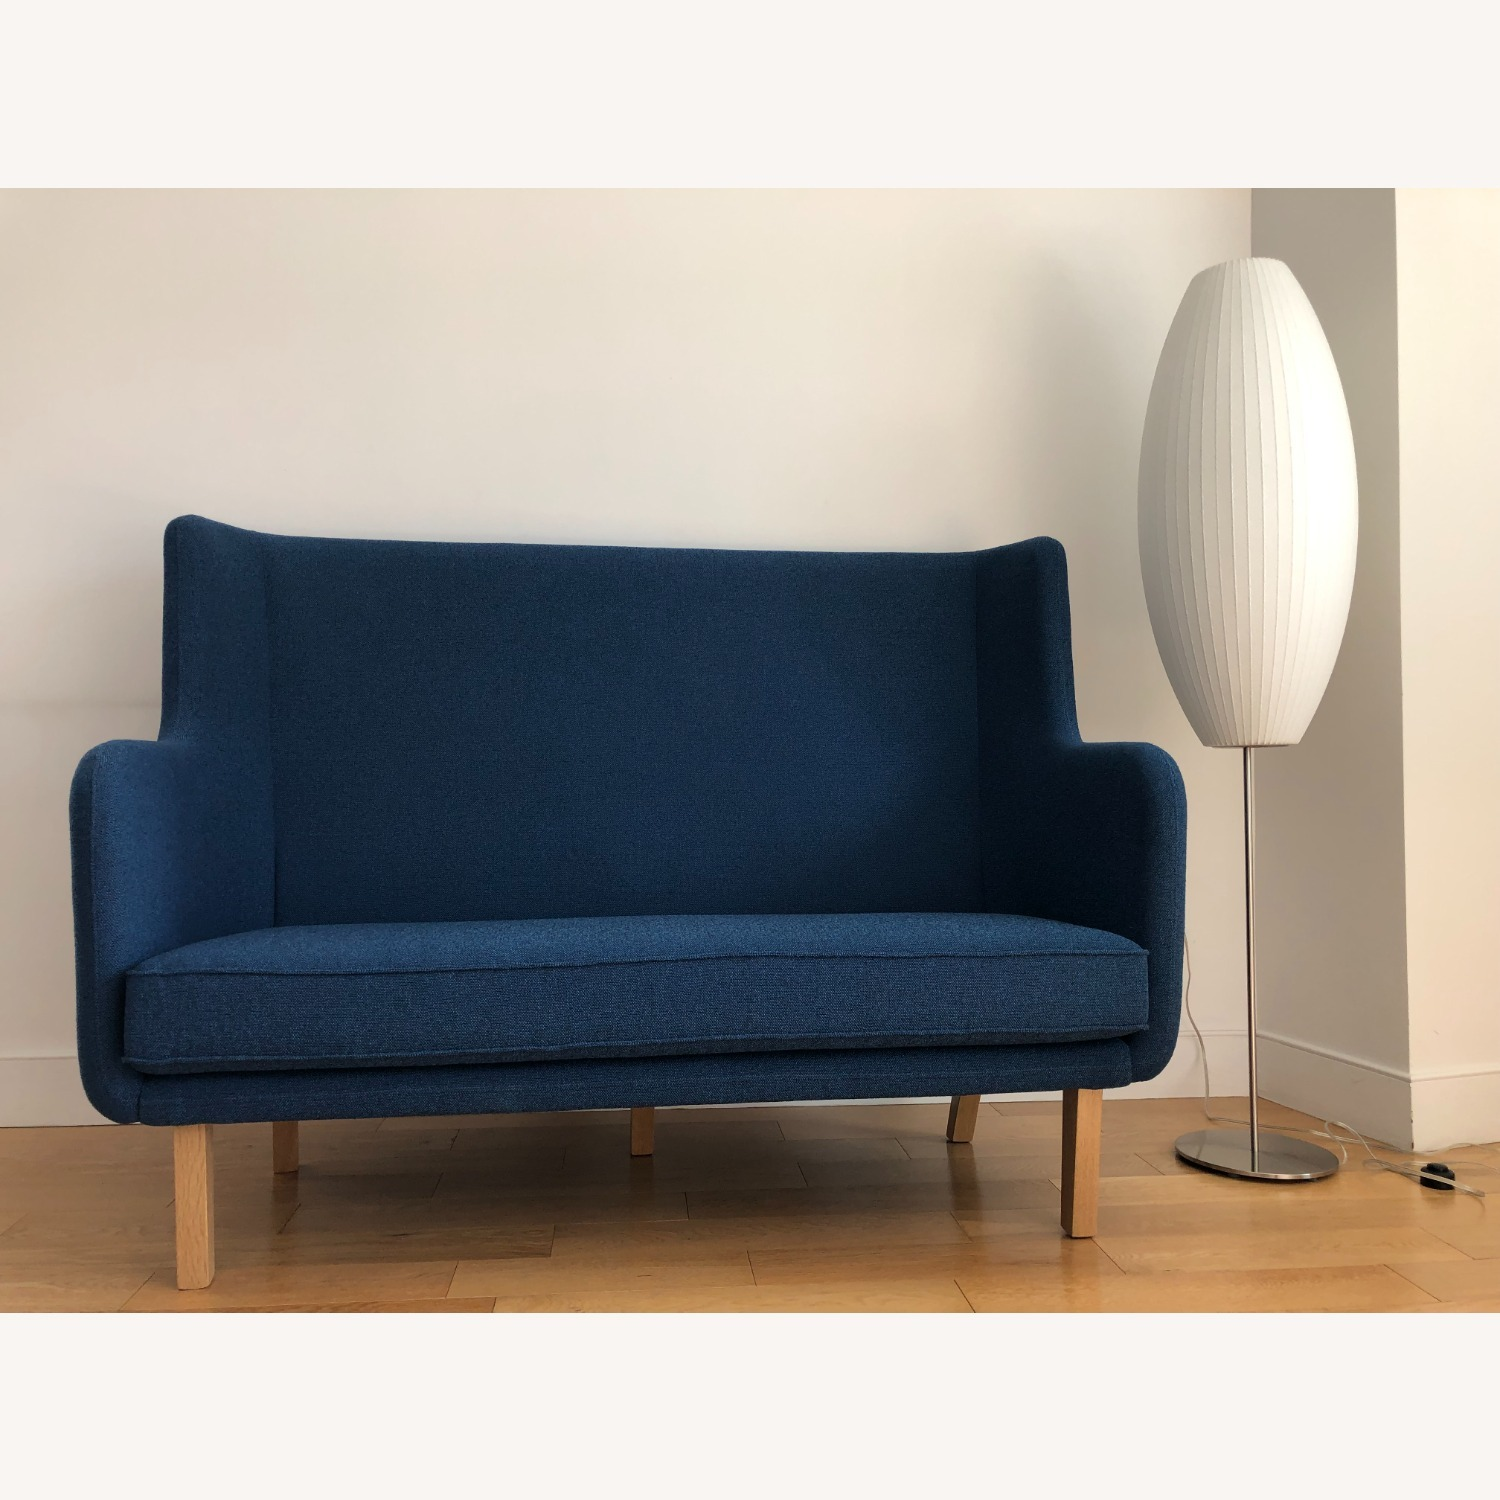 Knoll Rockwell Unscripted High Back Settee - image-2